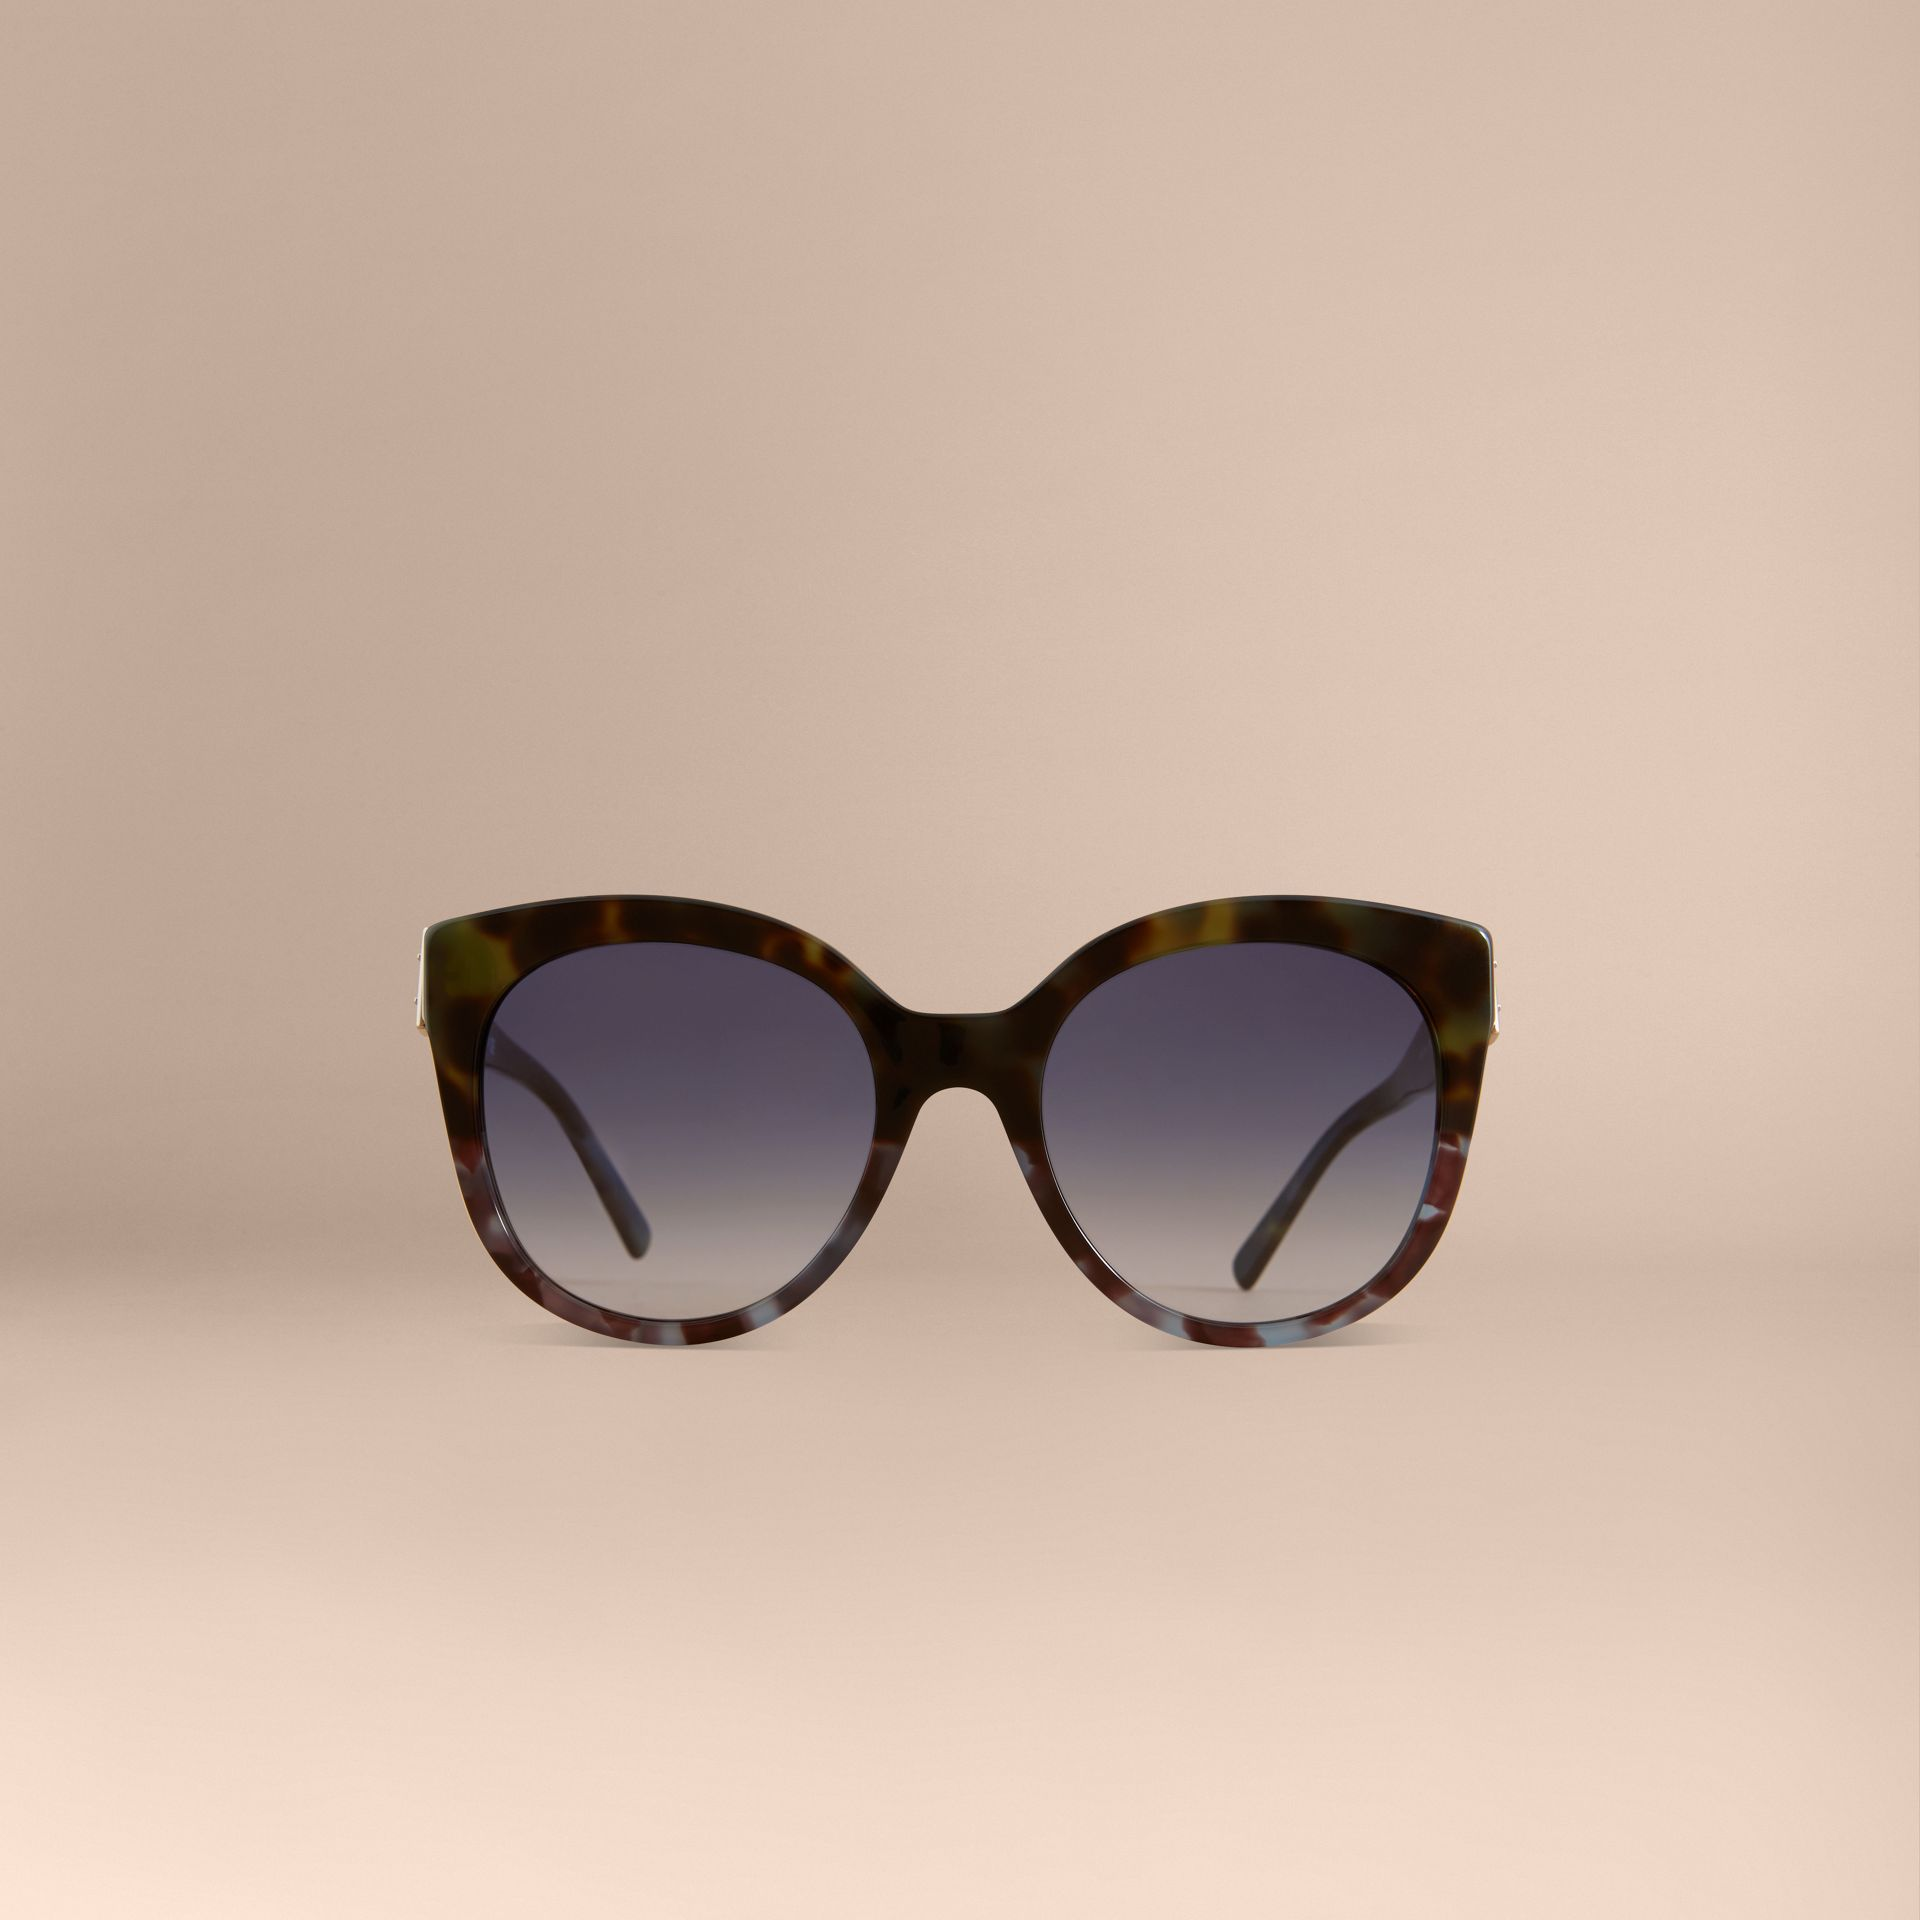 Buckle Detail Cat-eye Frame Sunglasses in Apple Green - Women | Burberry - gallery image 3